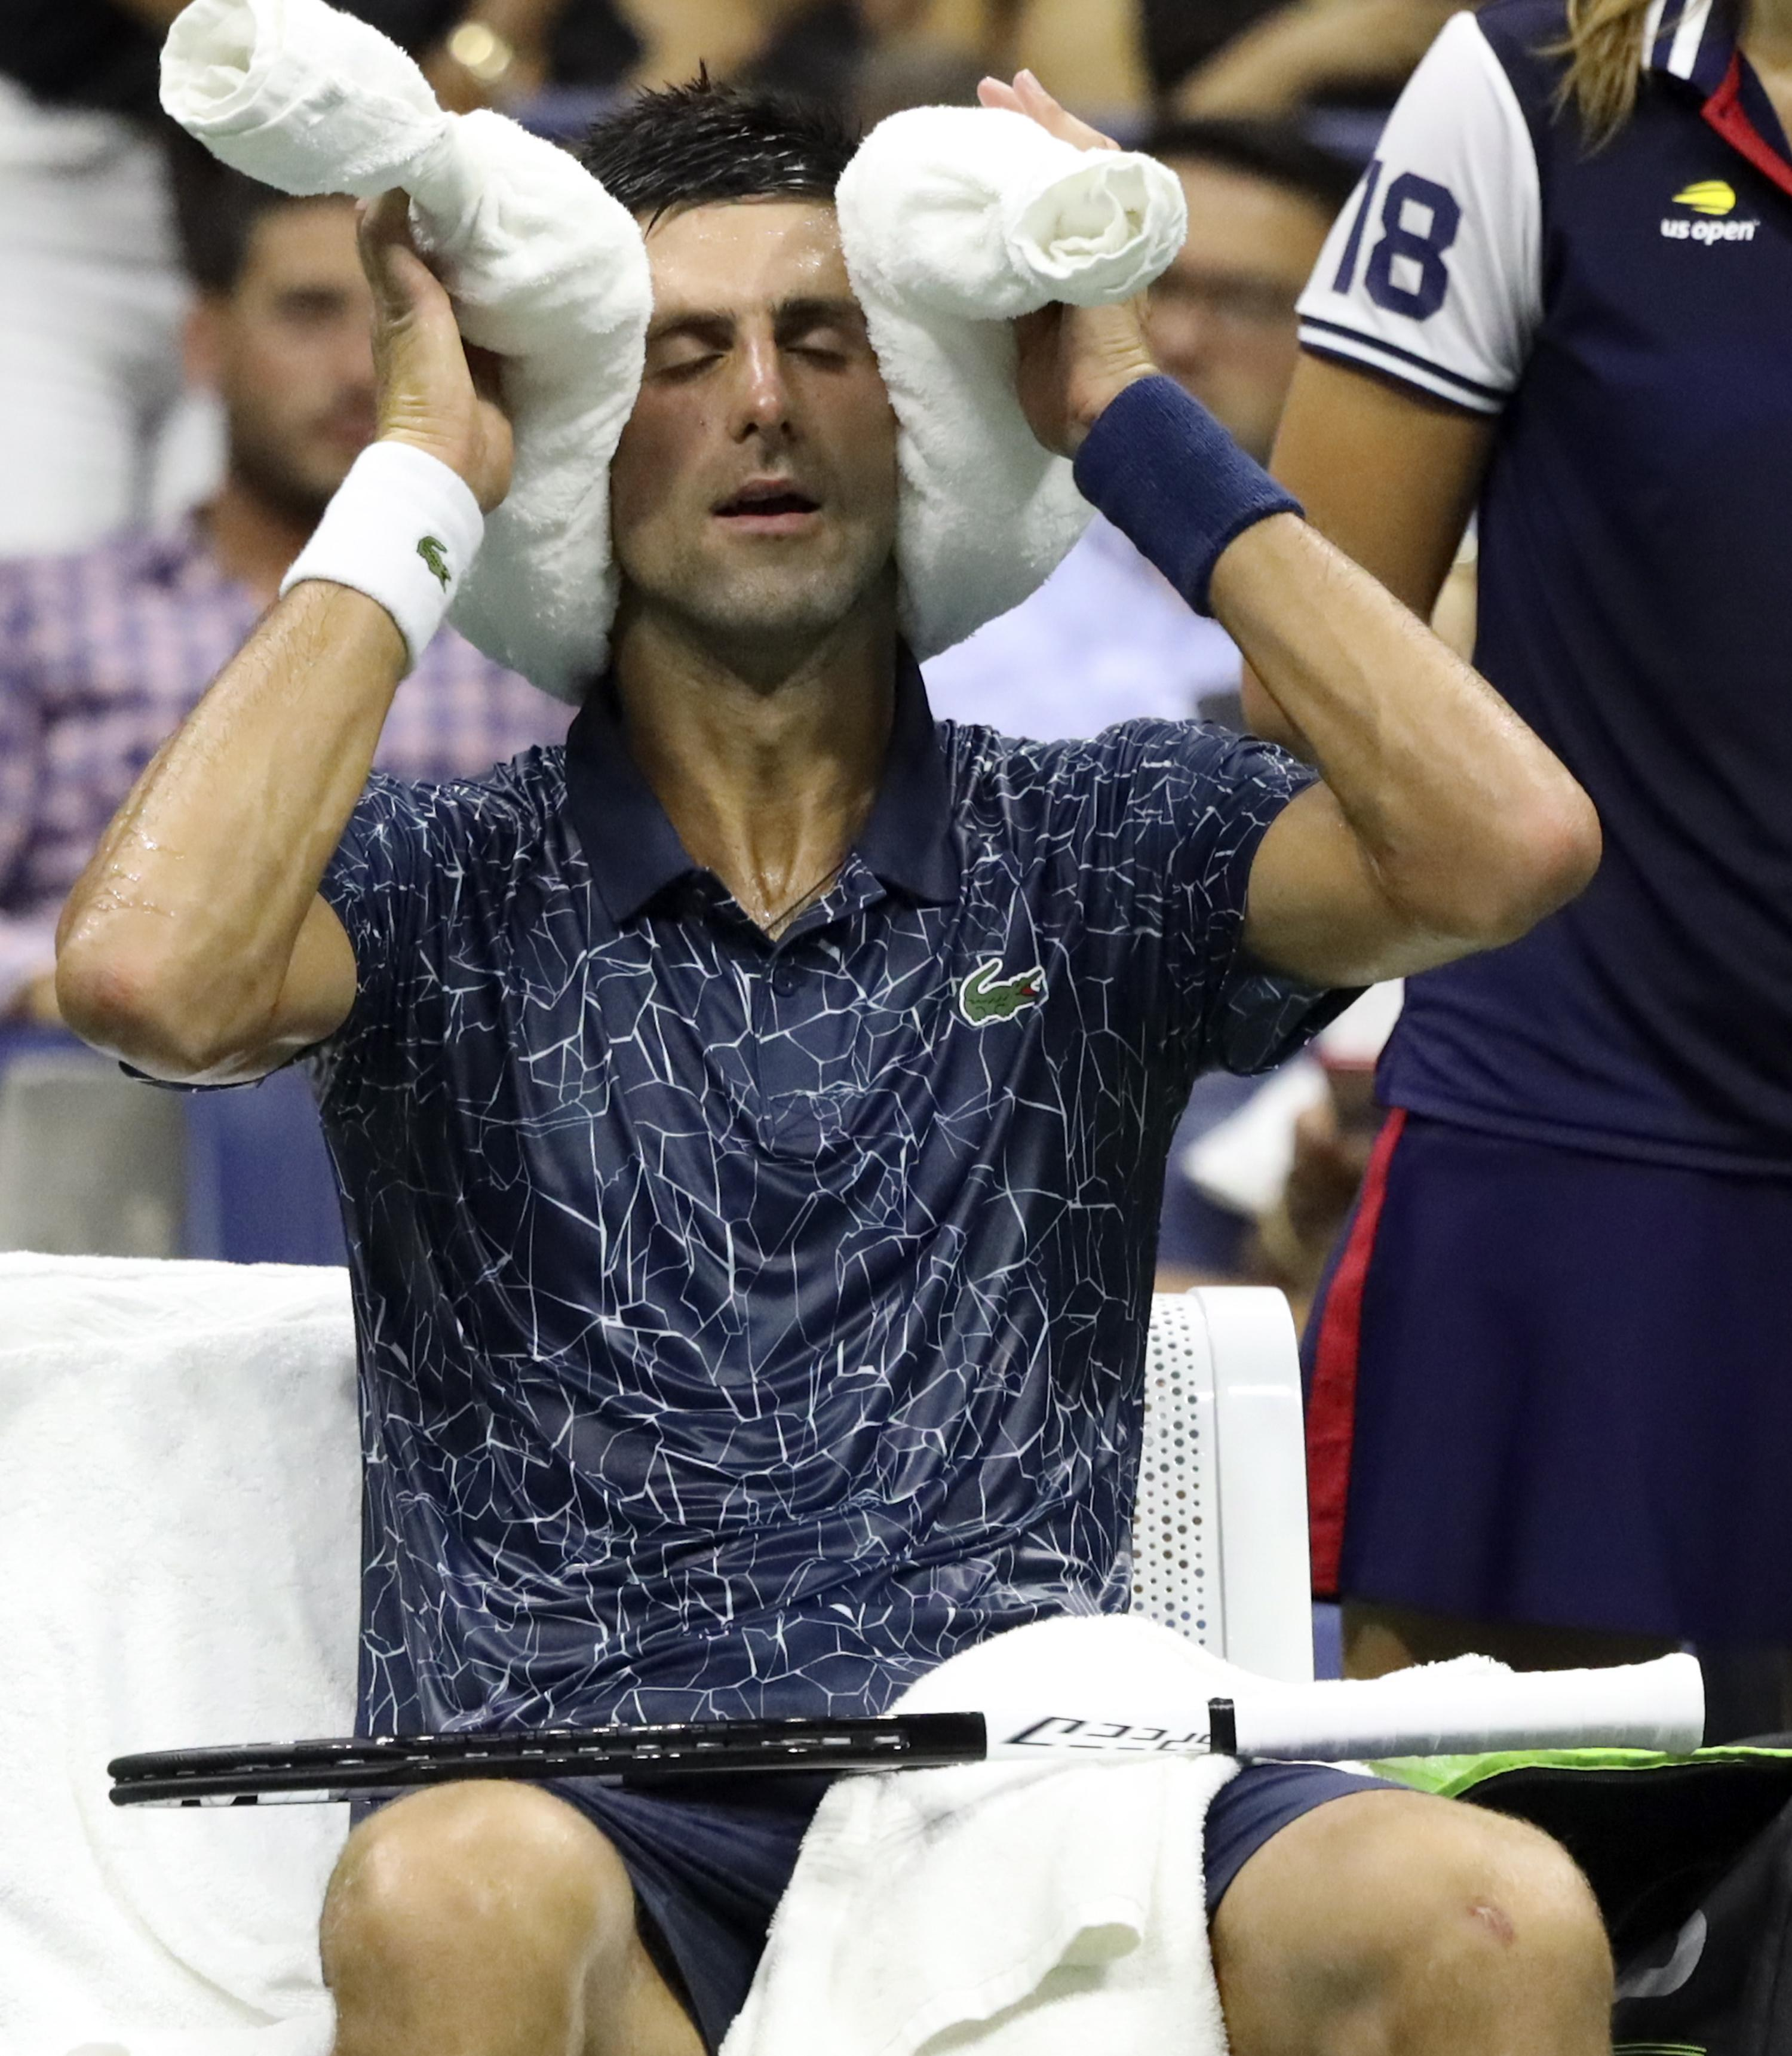 Novak Djokovic says he needs ten shirts for every game at the US Open due to weather conditions